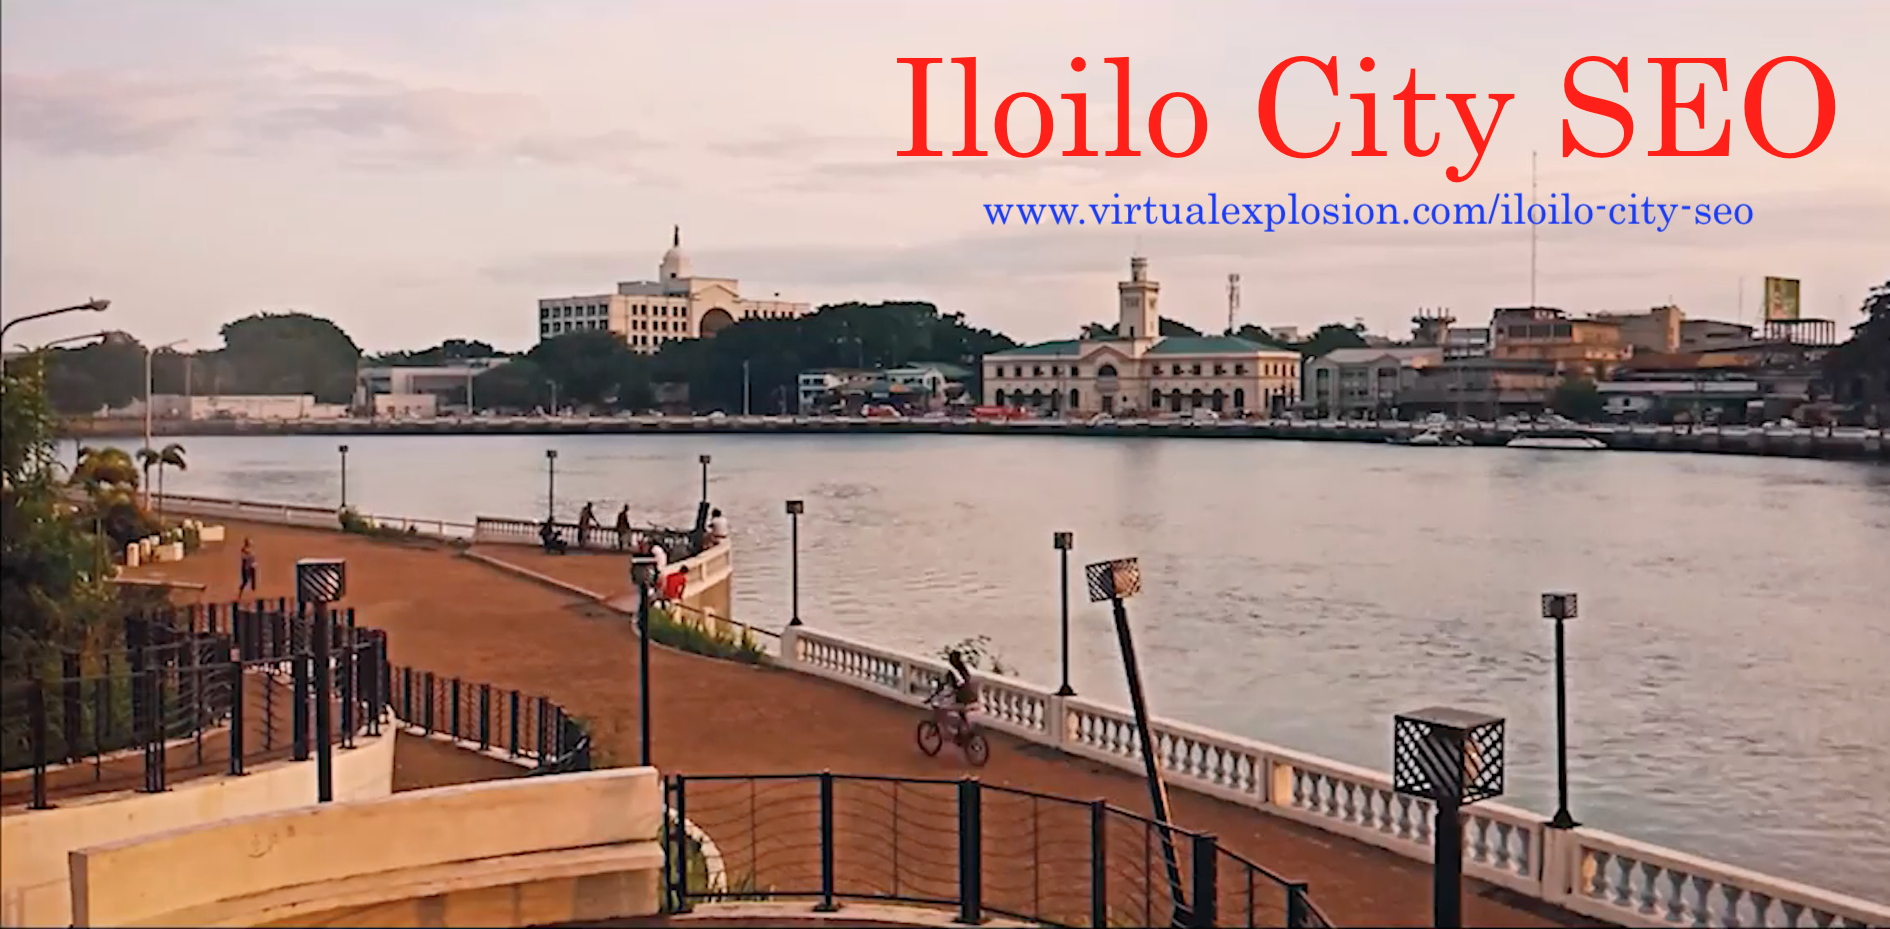 Search Engine Optimization in Iloilo City